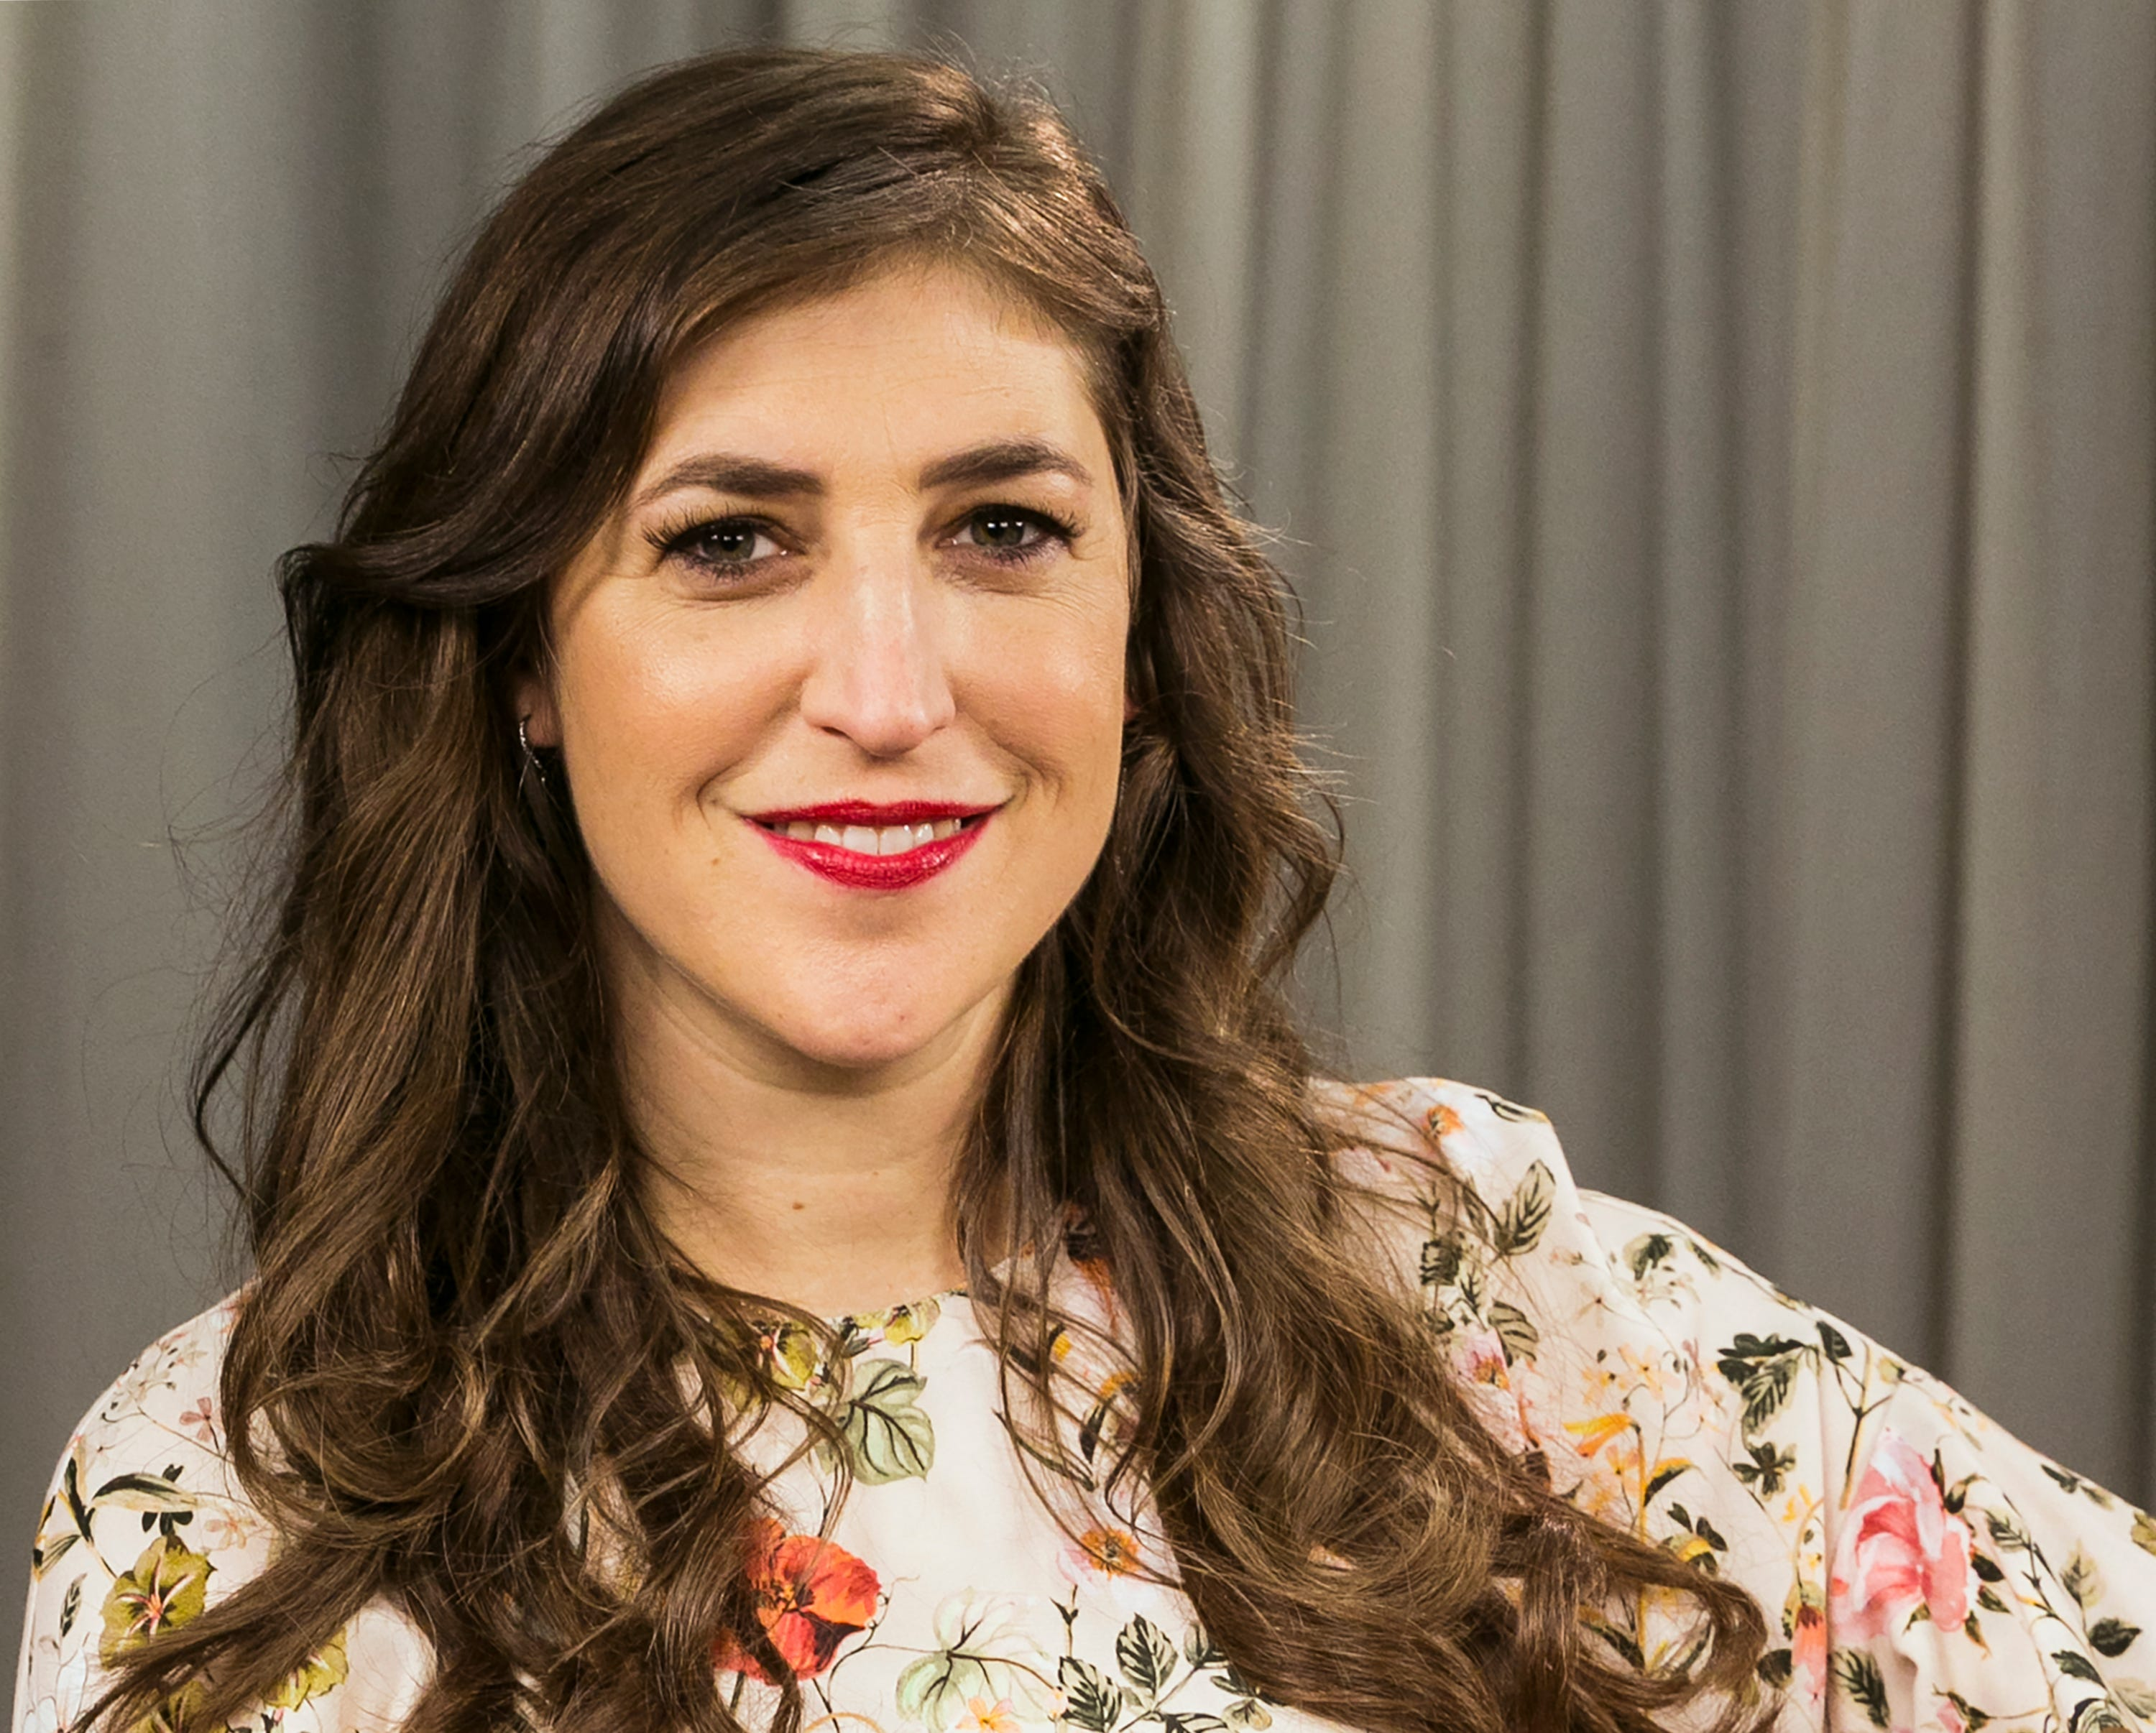 Mayim Bialik says she's recovering from an eating disorder